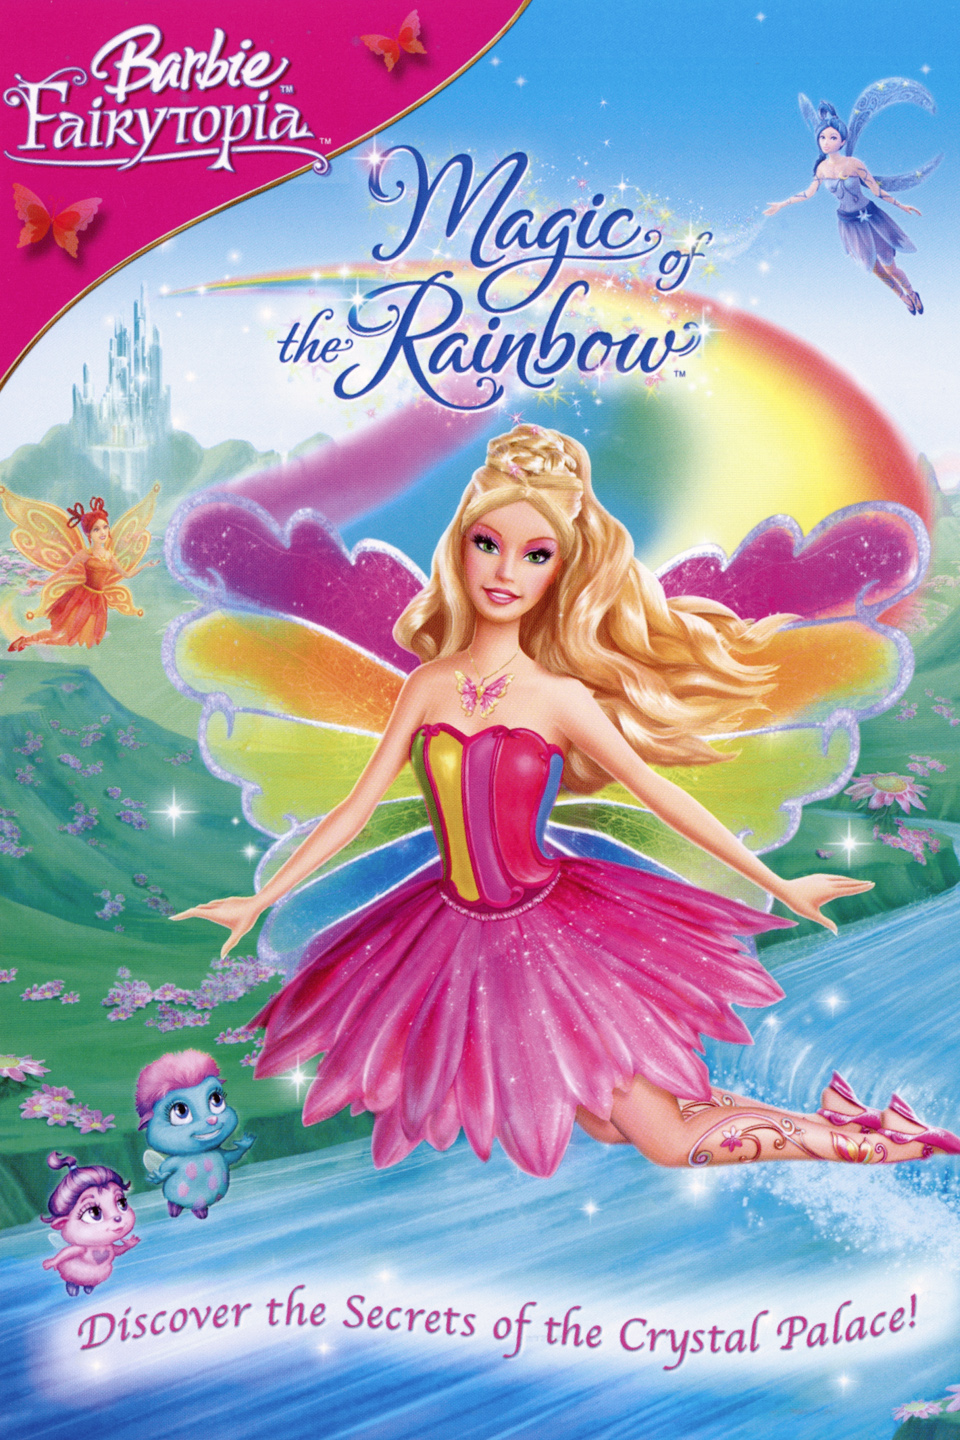 Barbie Fairytopia: Magic of the Rainbow-Barbie Fairytopia: Magic of the Rainbow